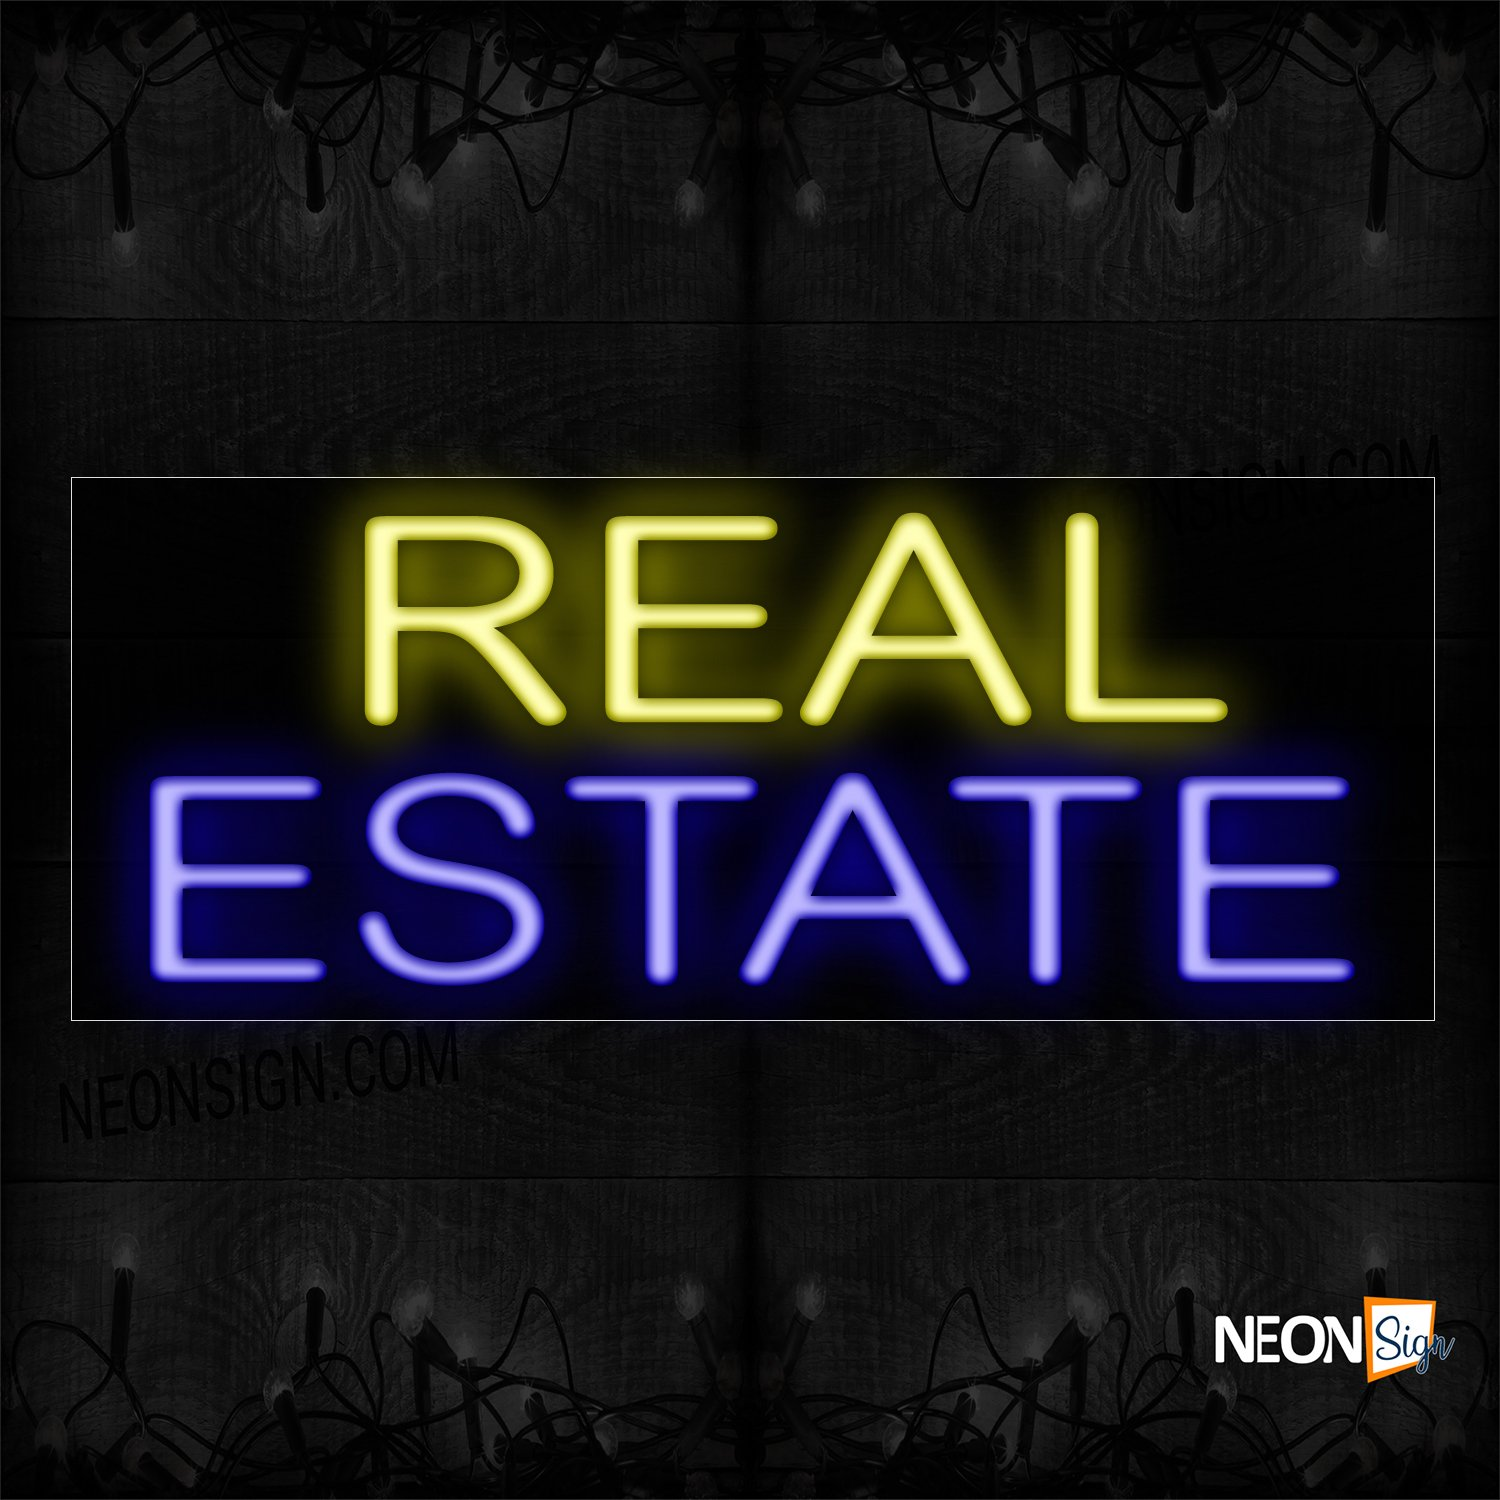 Image of 12143 Real Estate Neon Sign_10x24 Black Backing